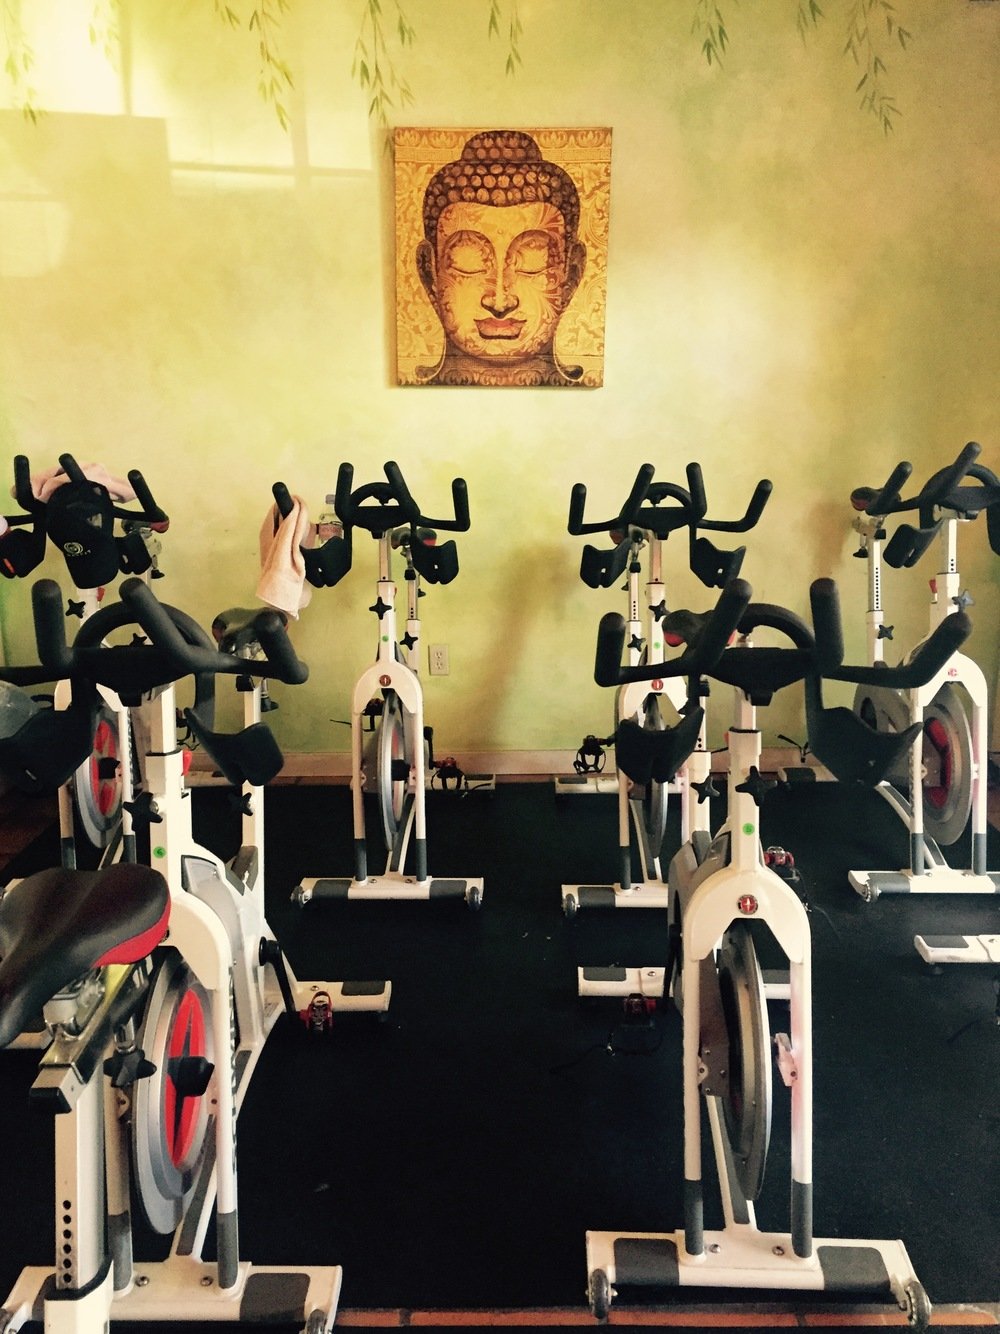 The Cycle 5 space at Fit Buddha.